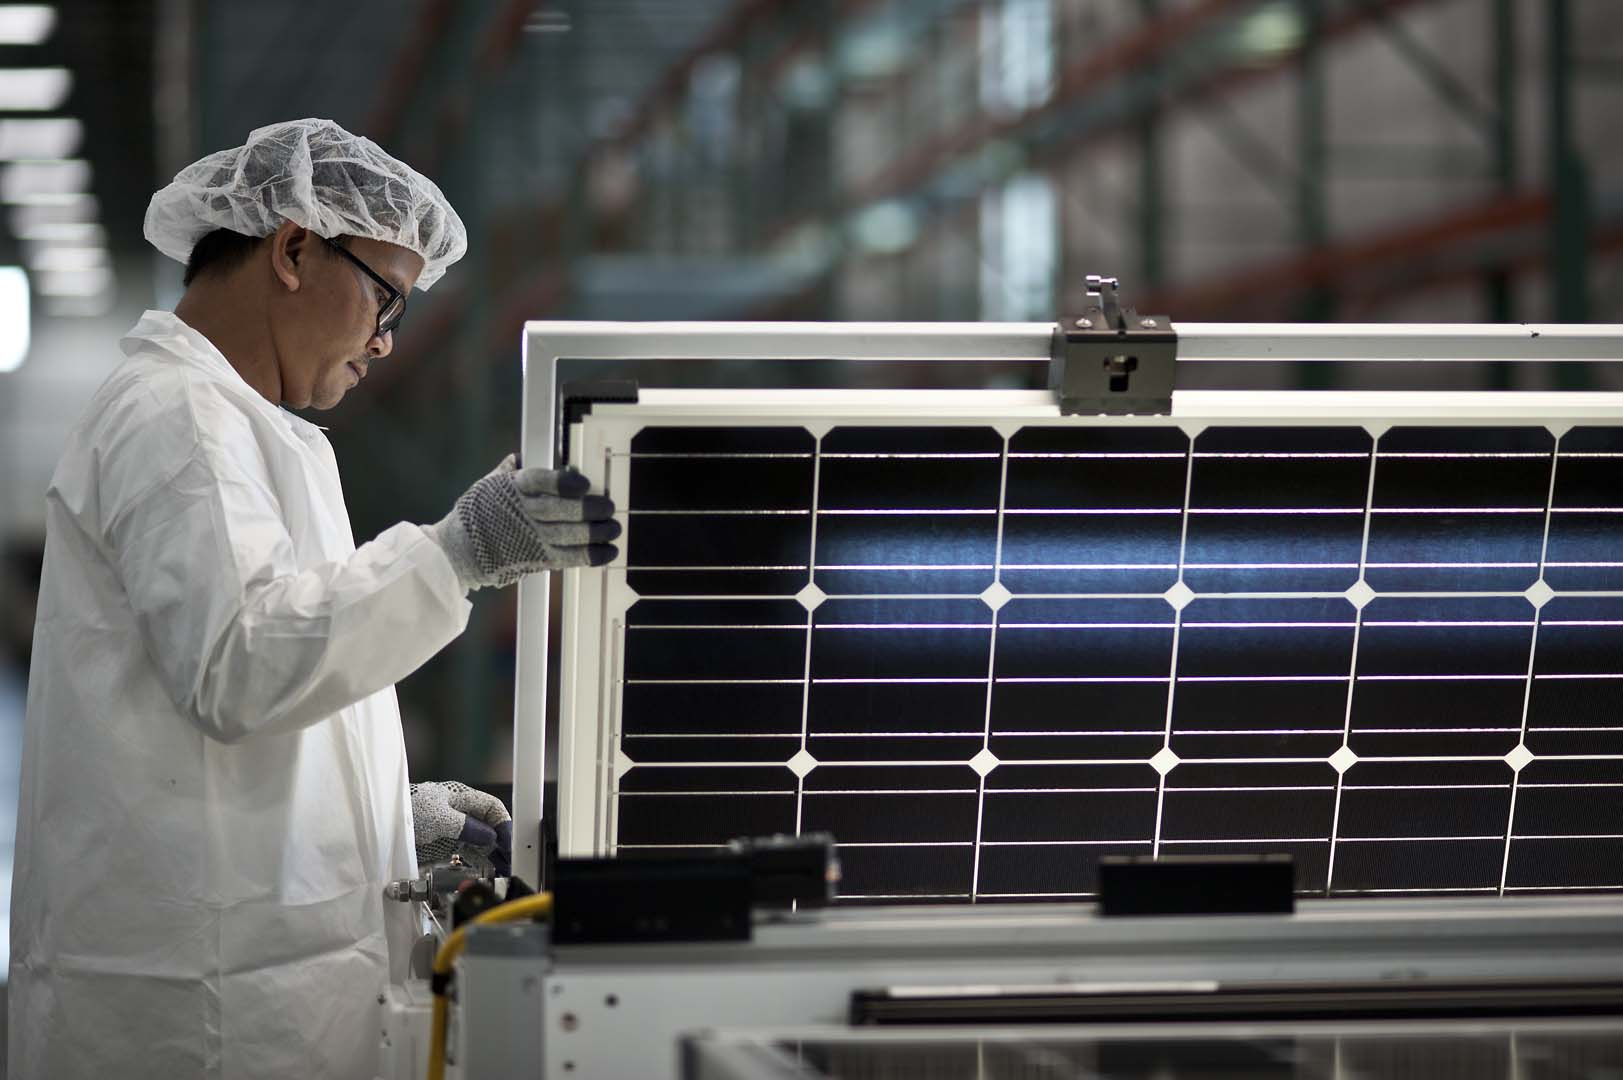 SolarWorld Americas, the US manufacturing and sales operations of bankrupt SolarWorld AG is the key outstanding asset up for grabs with production of high-efficiency P-type monocrystalline PERC (Passivated Emitter Rear Cell) technology in Hillsboro, Oregon. Image: SolarWorld